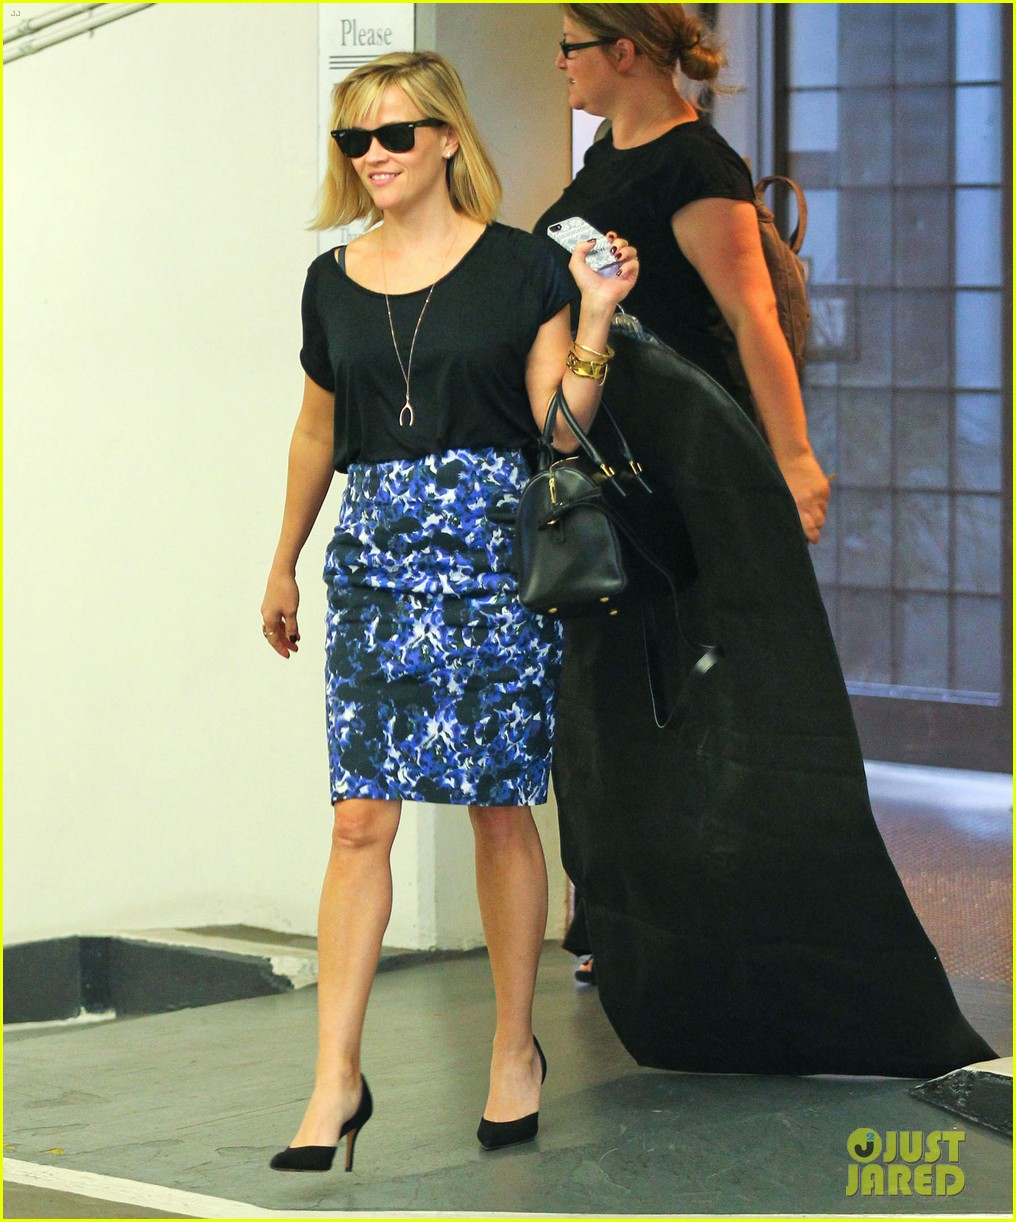 reese witherspoon steps out after the intern news 073033535